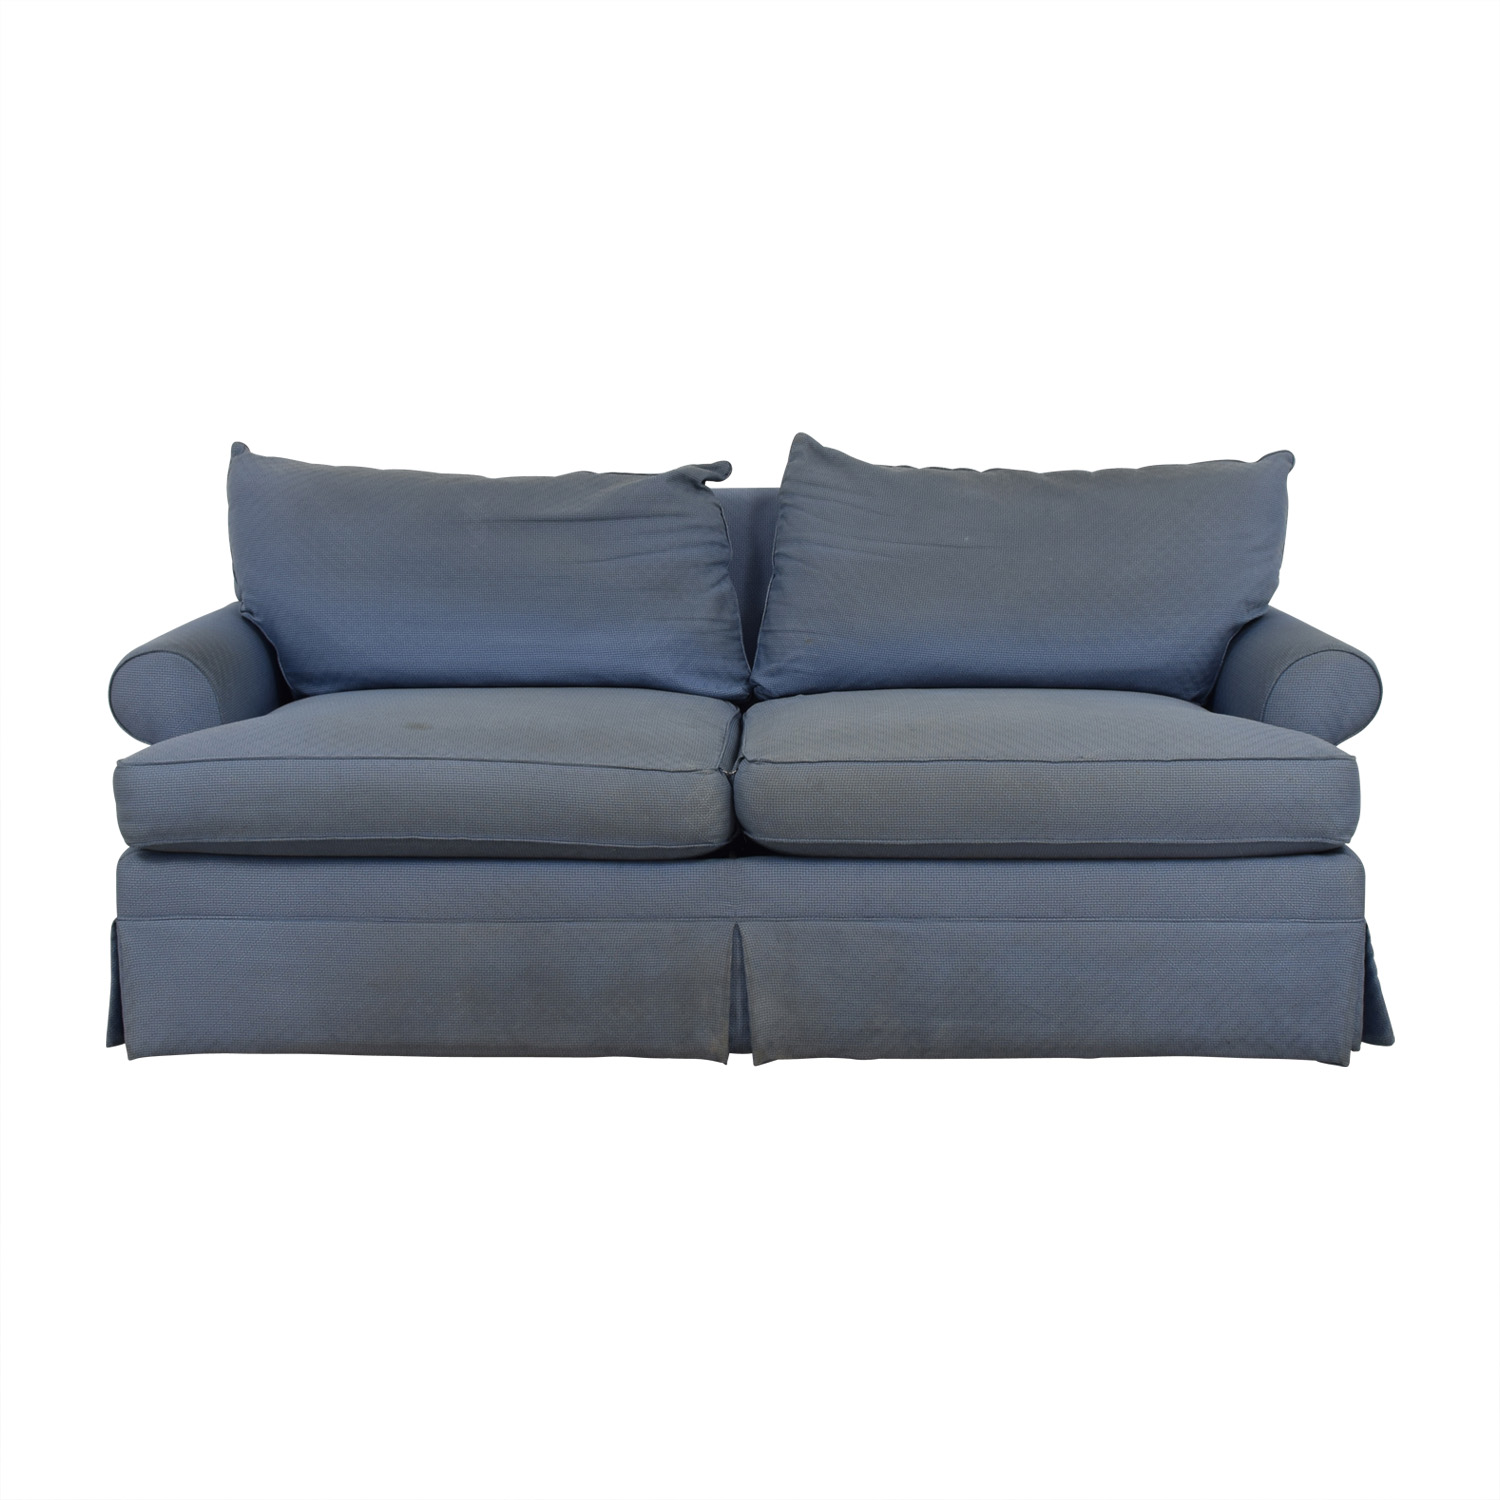 Ethan Allen Ethan Allen Blue Two-Cushion Sofa discount